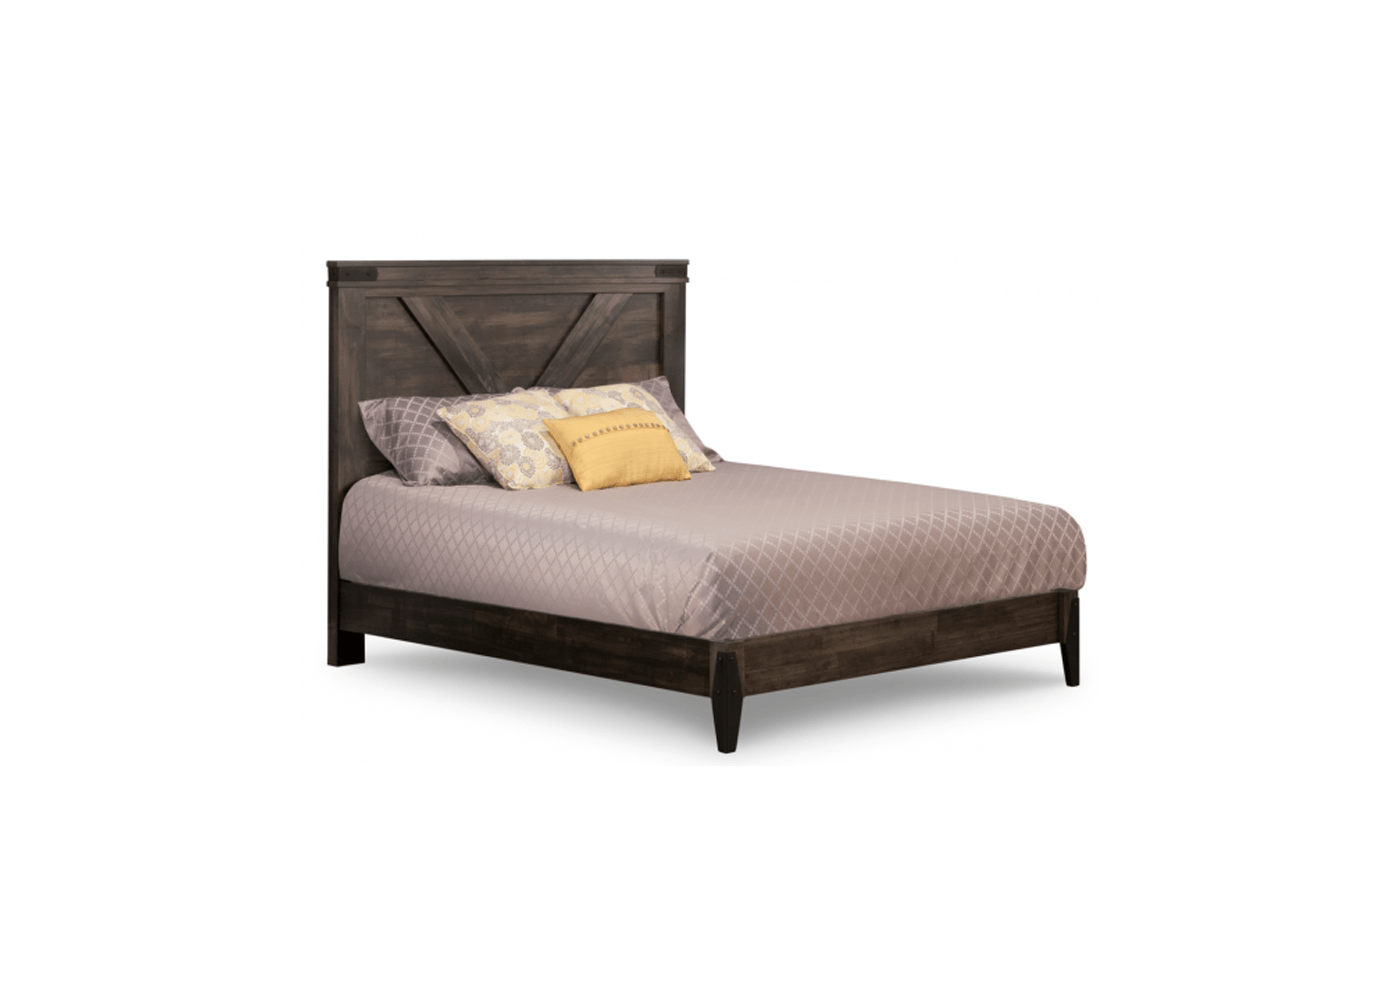 Ottawa Bed Stores Polanco Furniture Store Ottawa Interior Decor Solutions